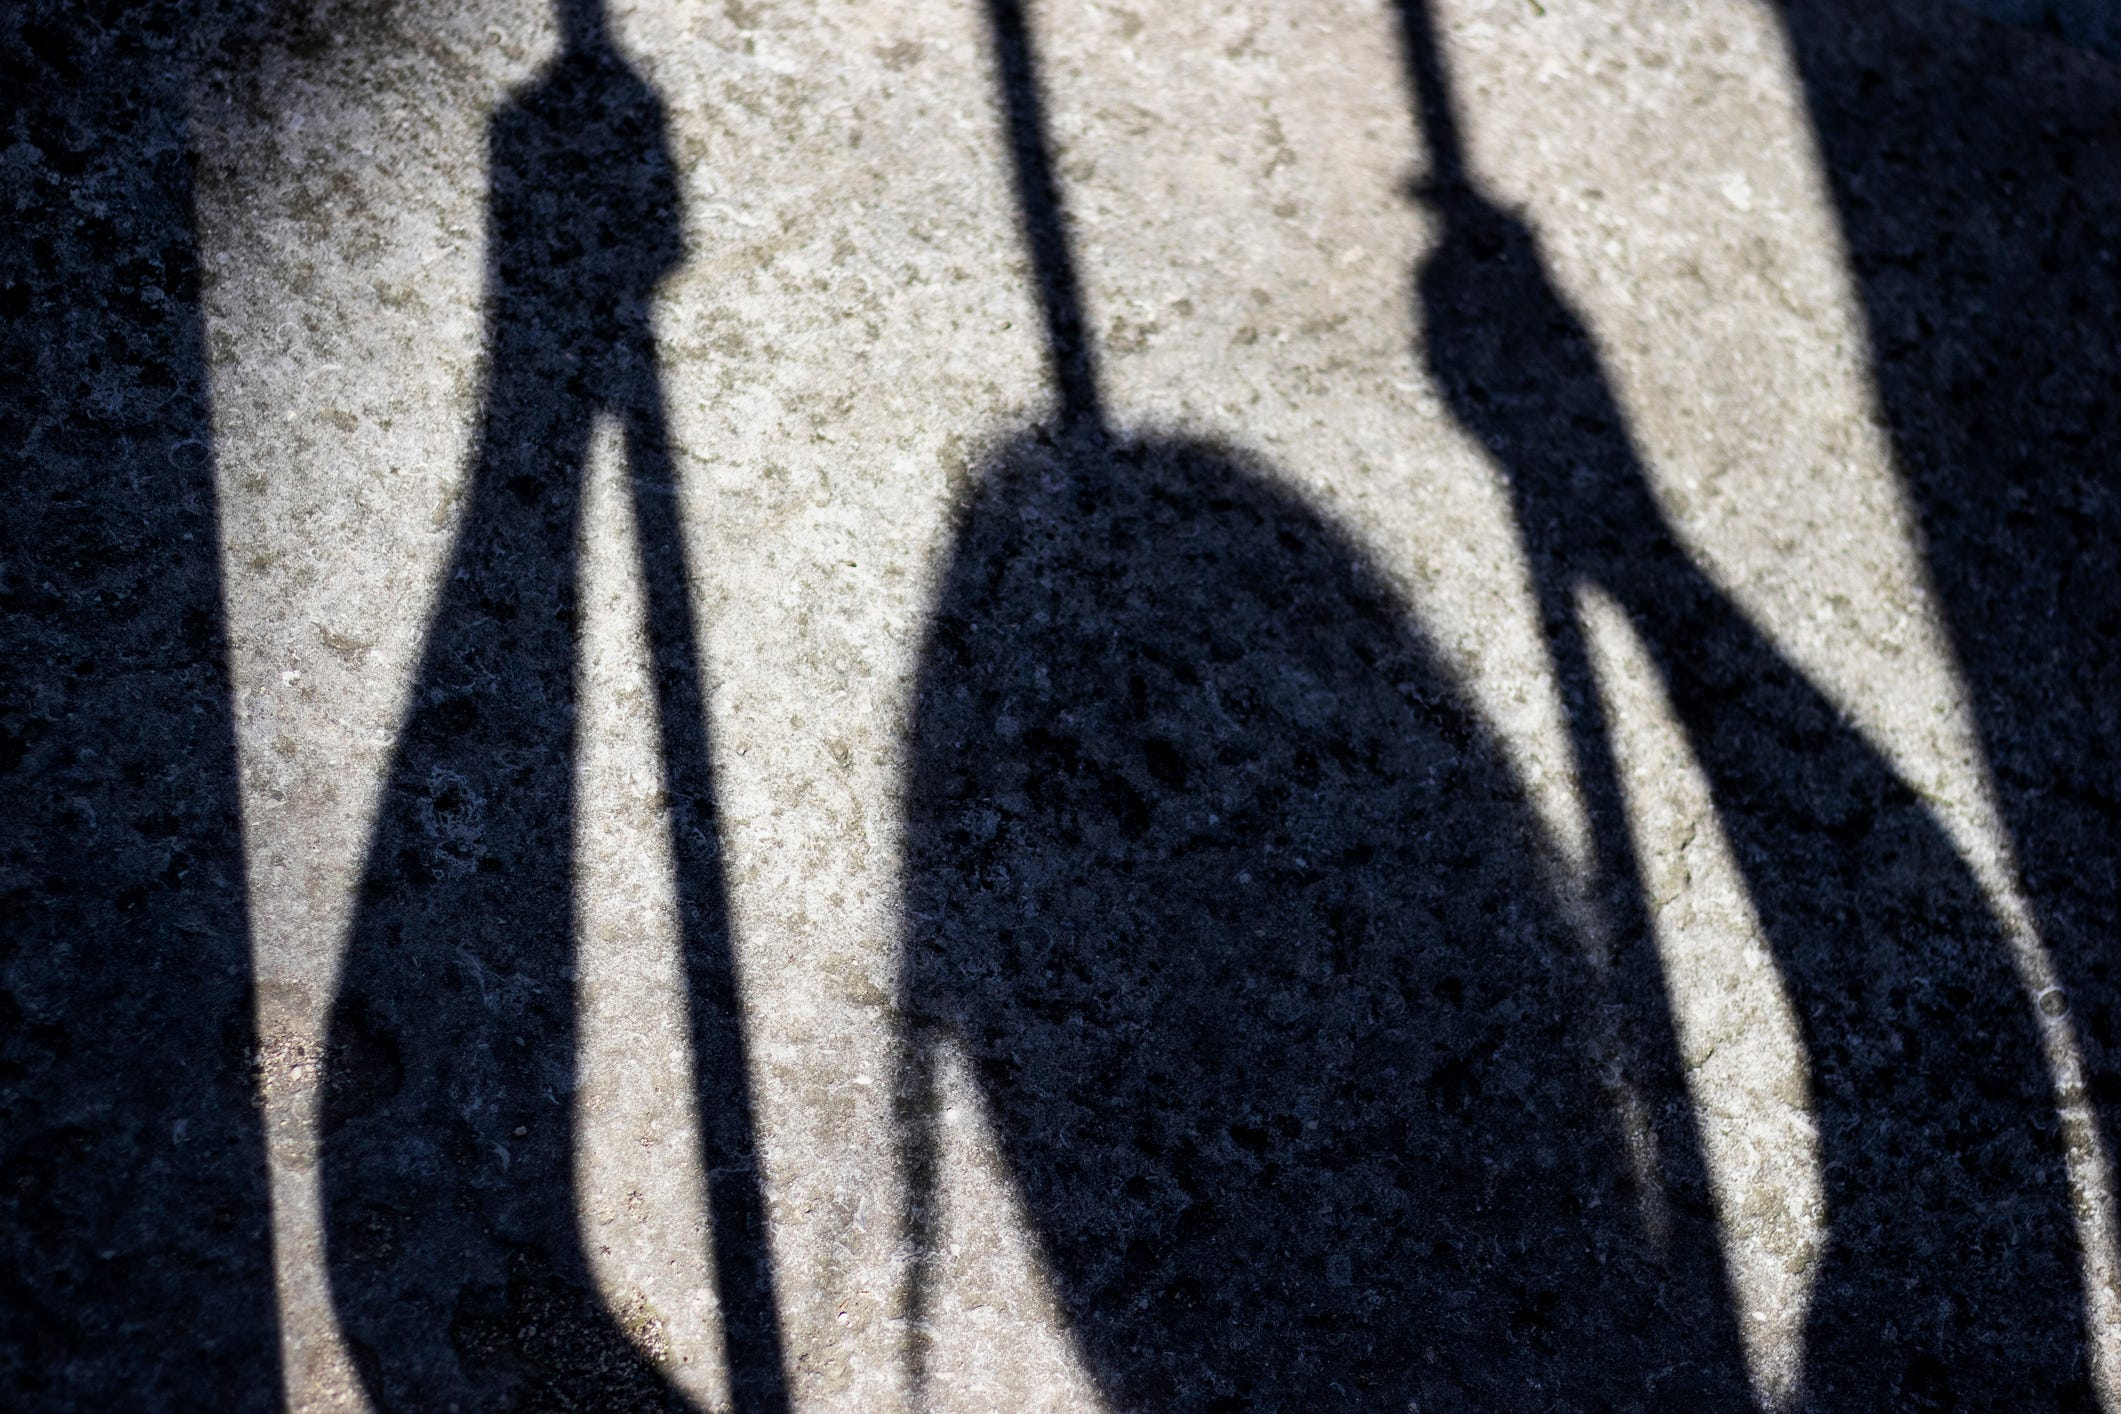 Detroit FBI: Human trafficking of children, teens on the rise amid virtual learning